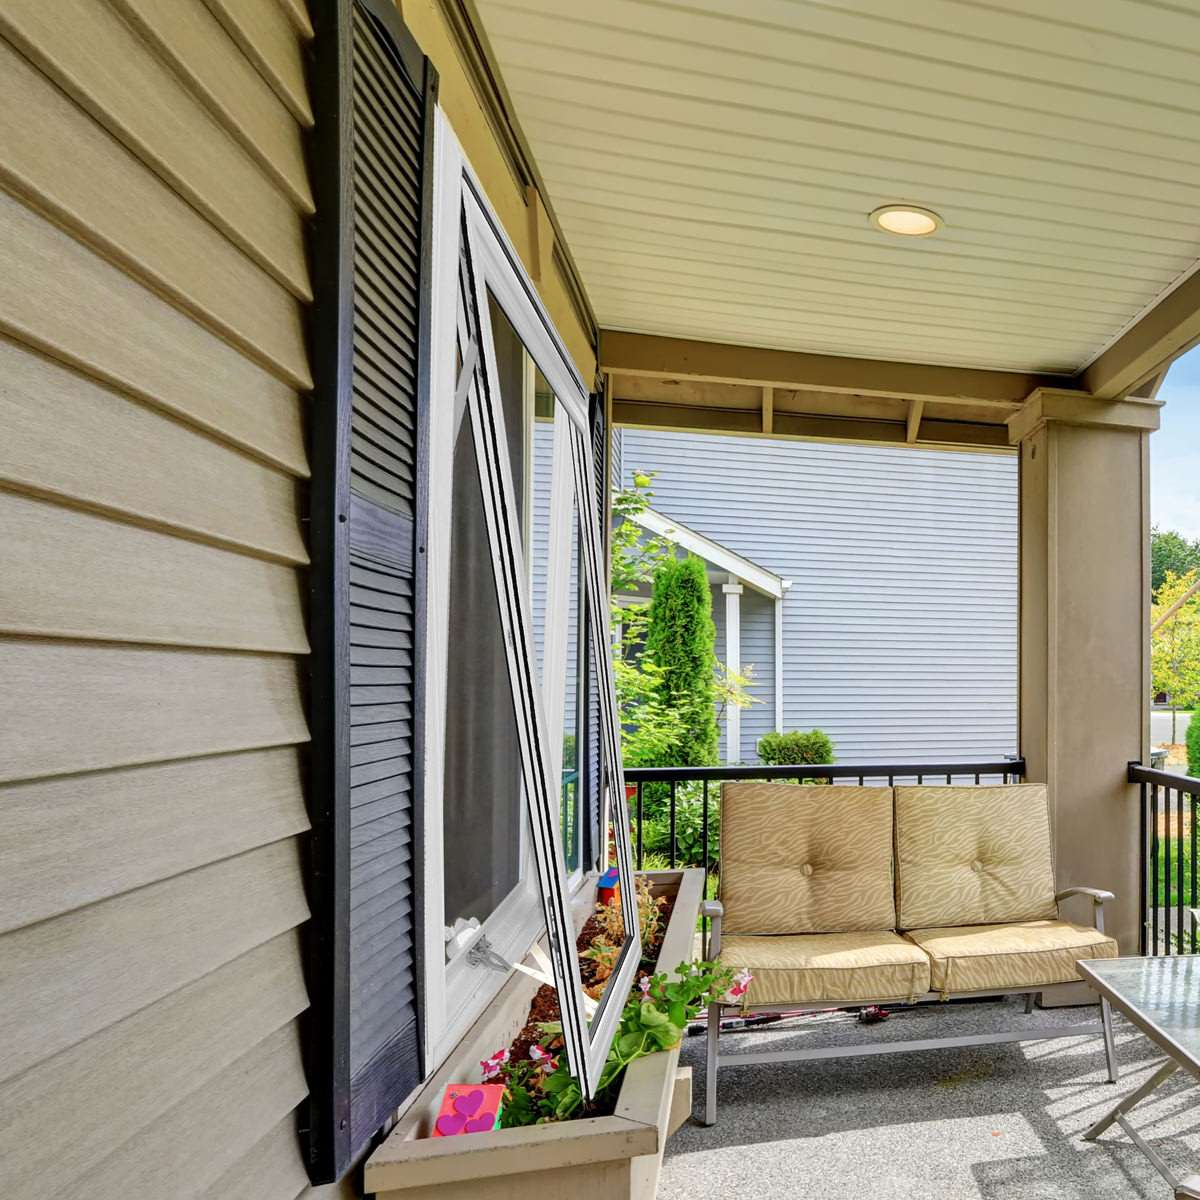 Side of a house with an open white awning window and an outside furniture set on the deck.